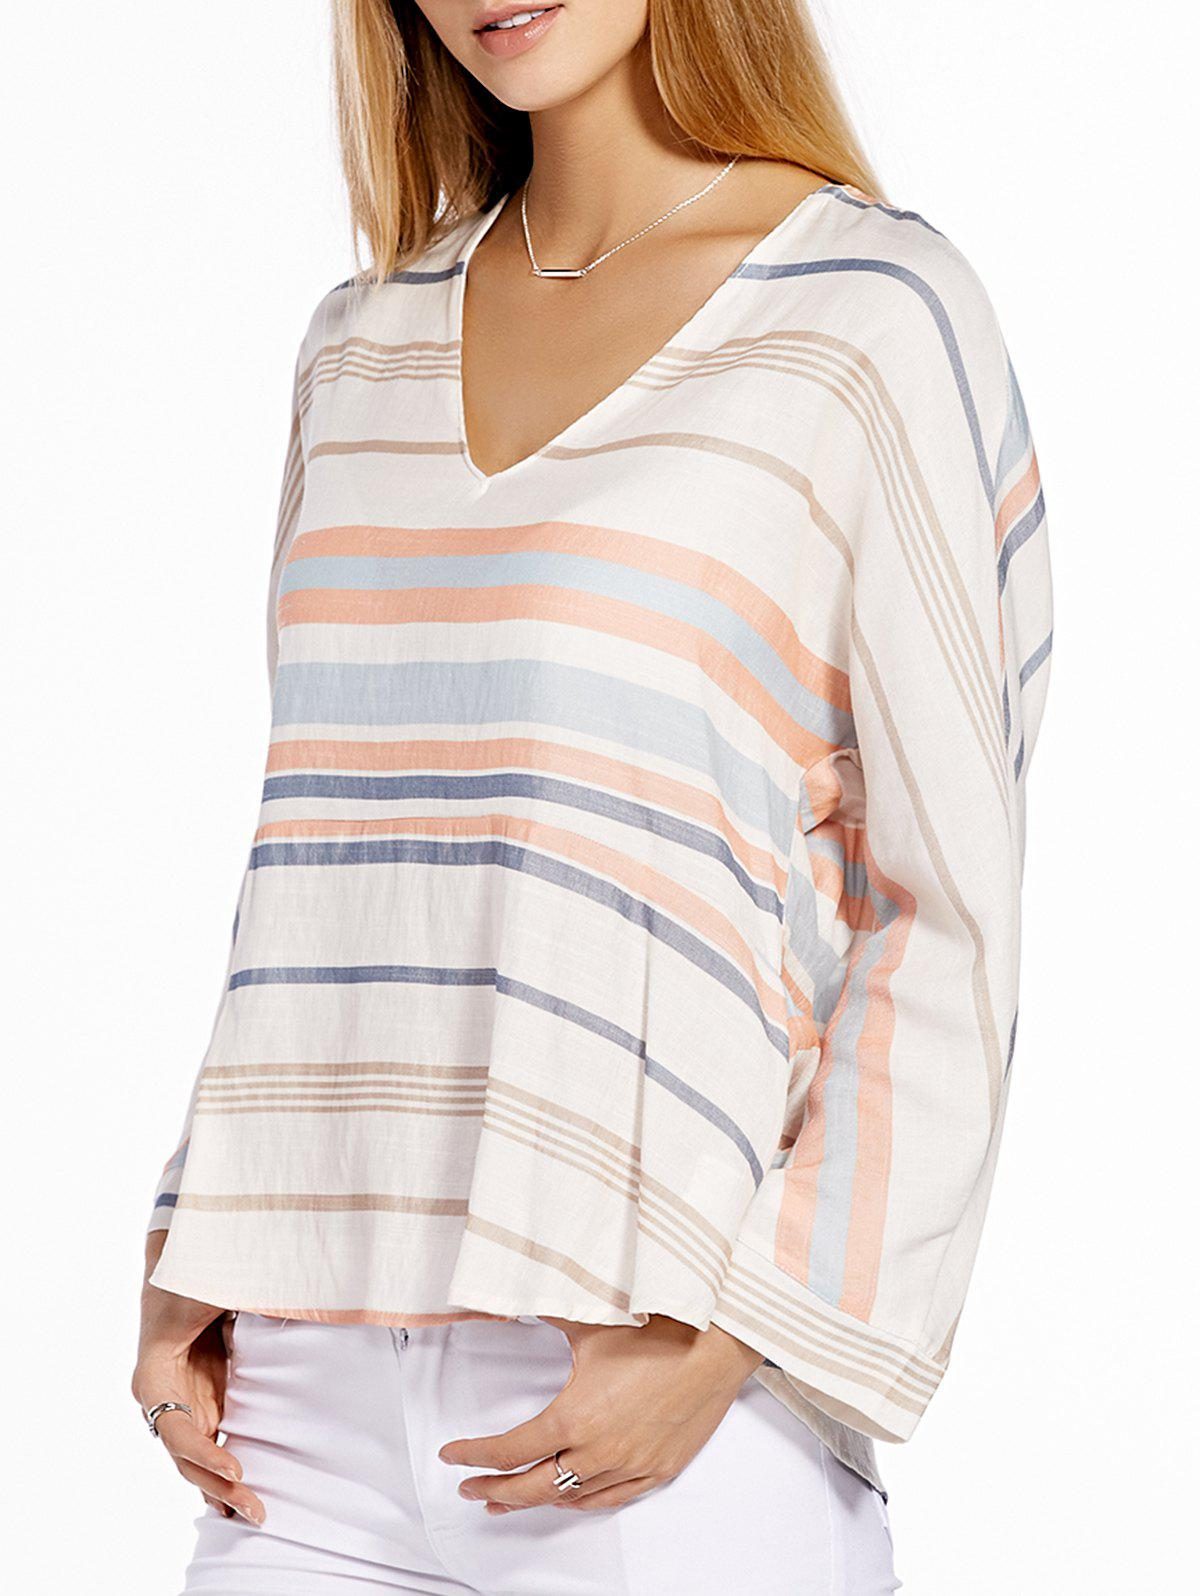 Stylish Women's 3/4 Sleeve V-Neck Striped Blouse